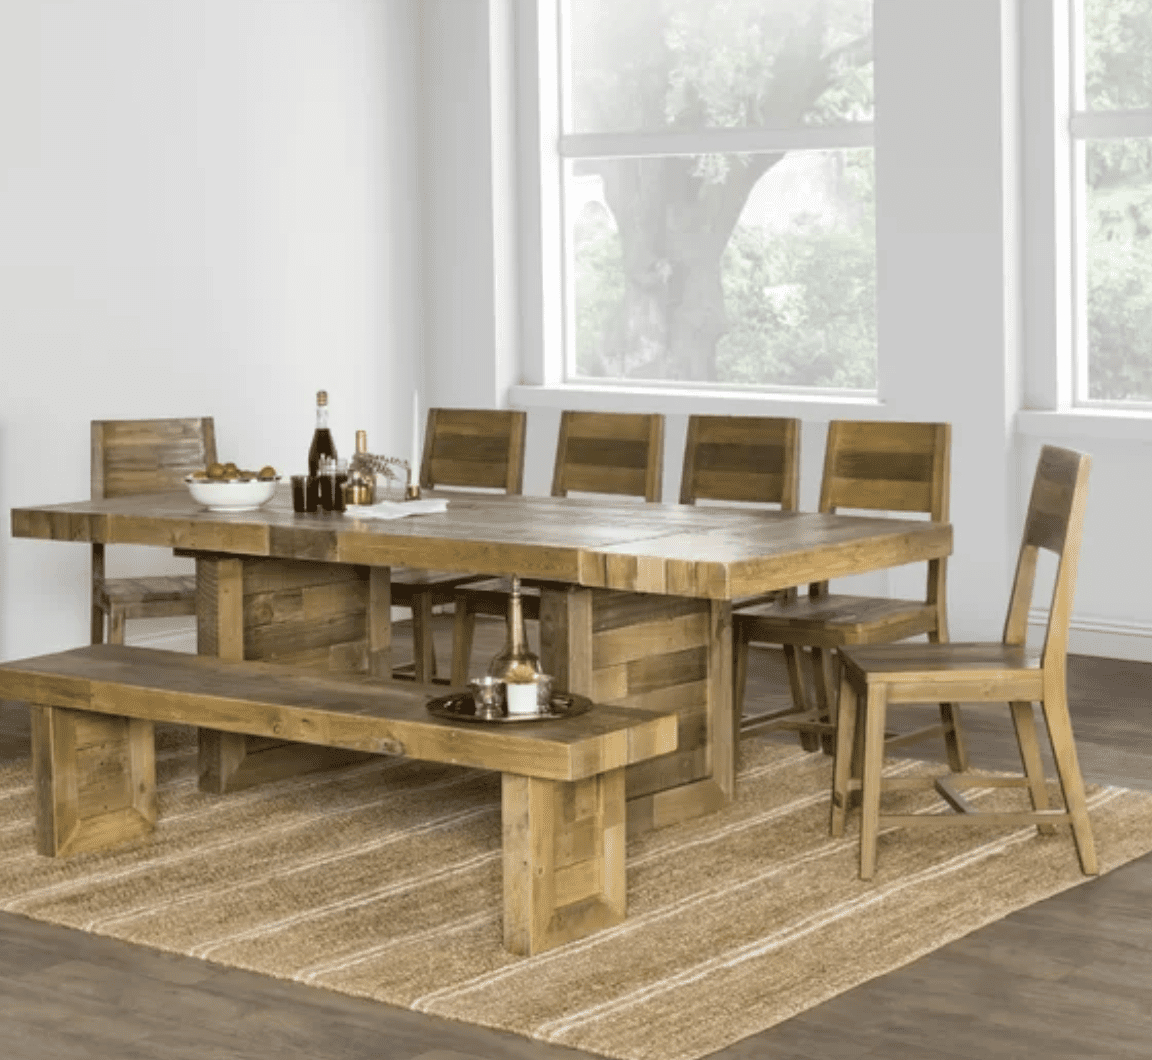 The 9 Best Dining Room Tables Of 2020 For Most Recent Gray Wash Lorraine Extending Dining Tables (View 11 of 25)